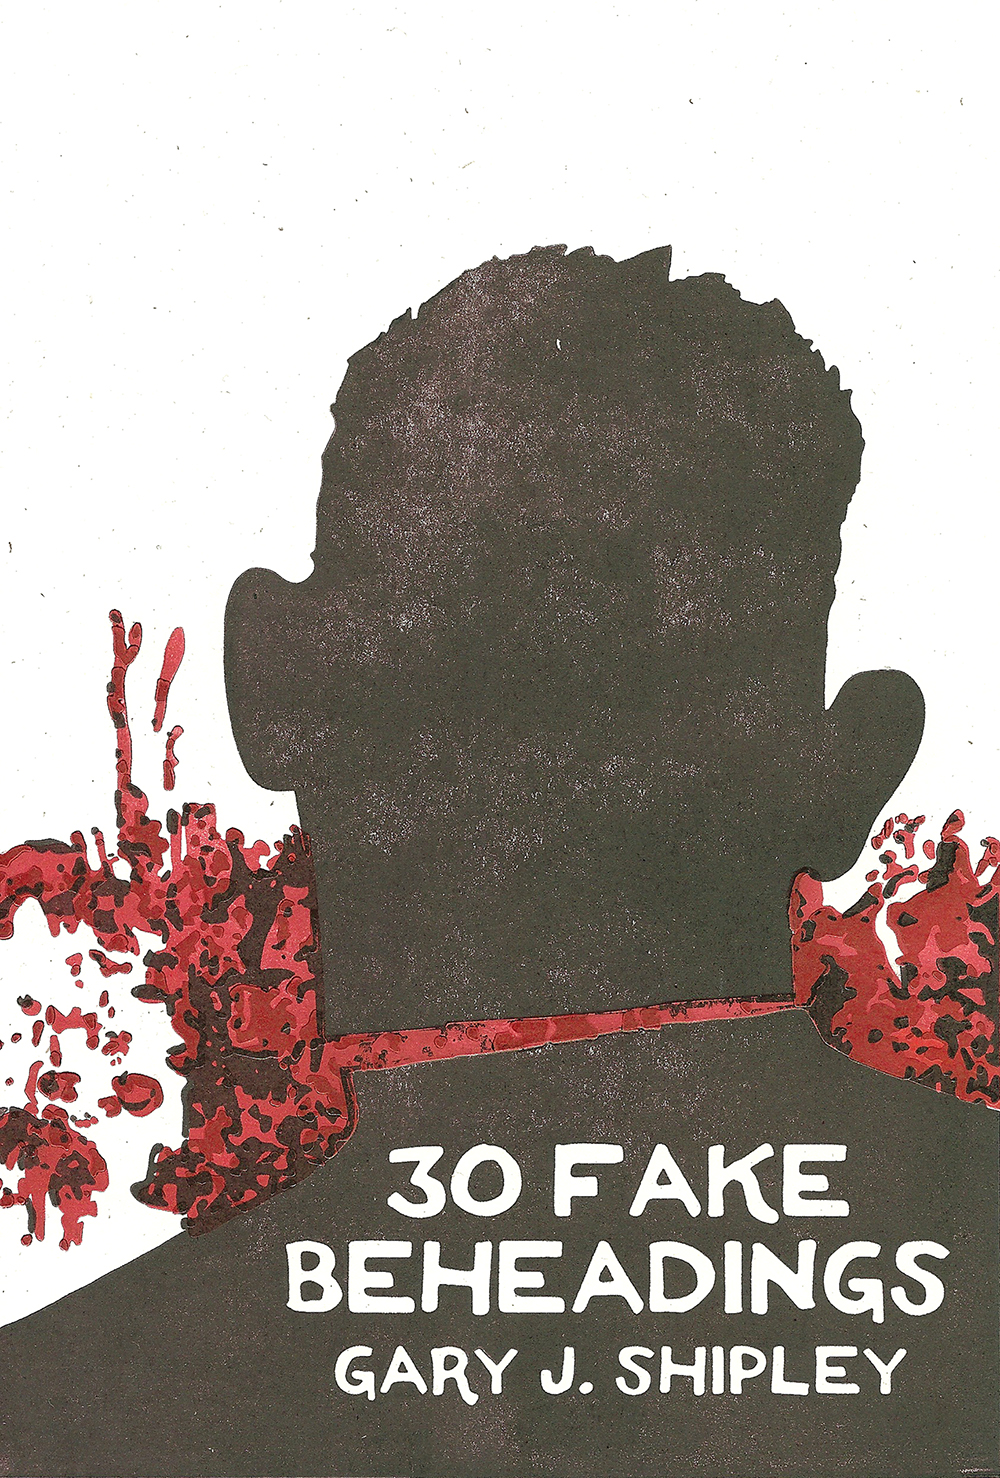 30 Fake Beheadings